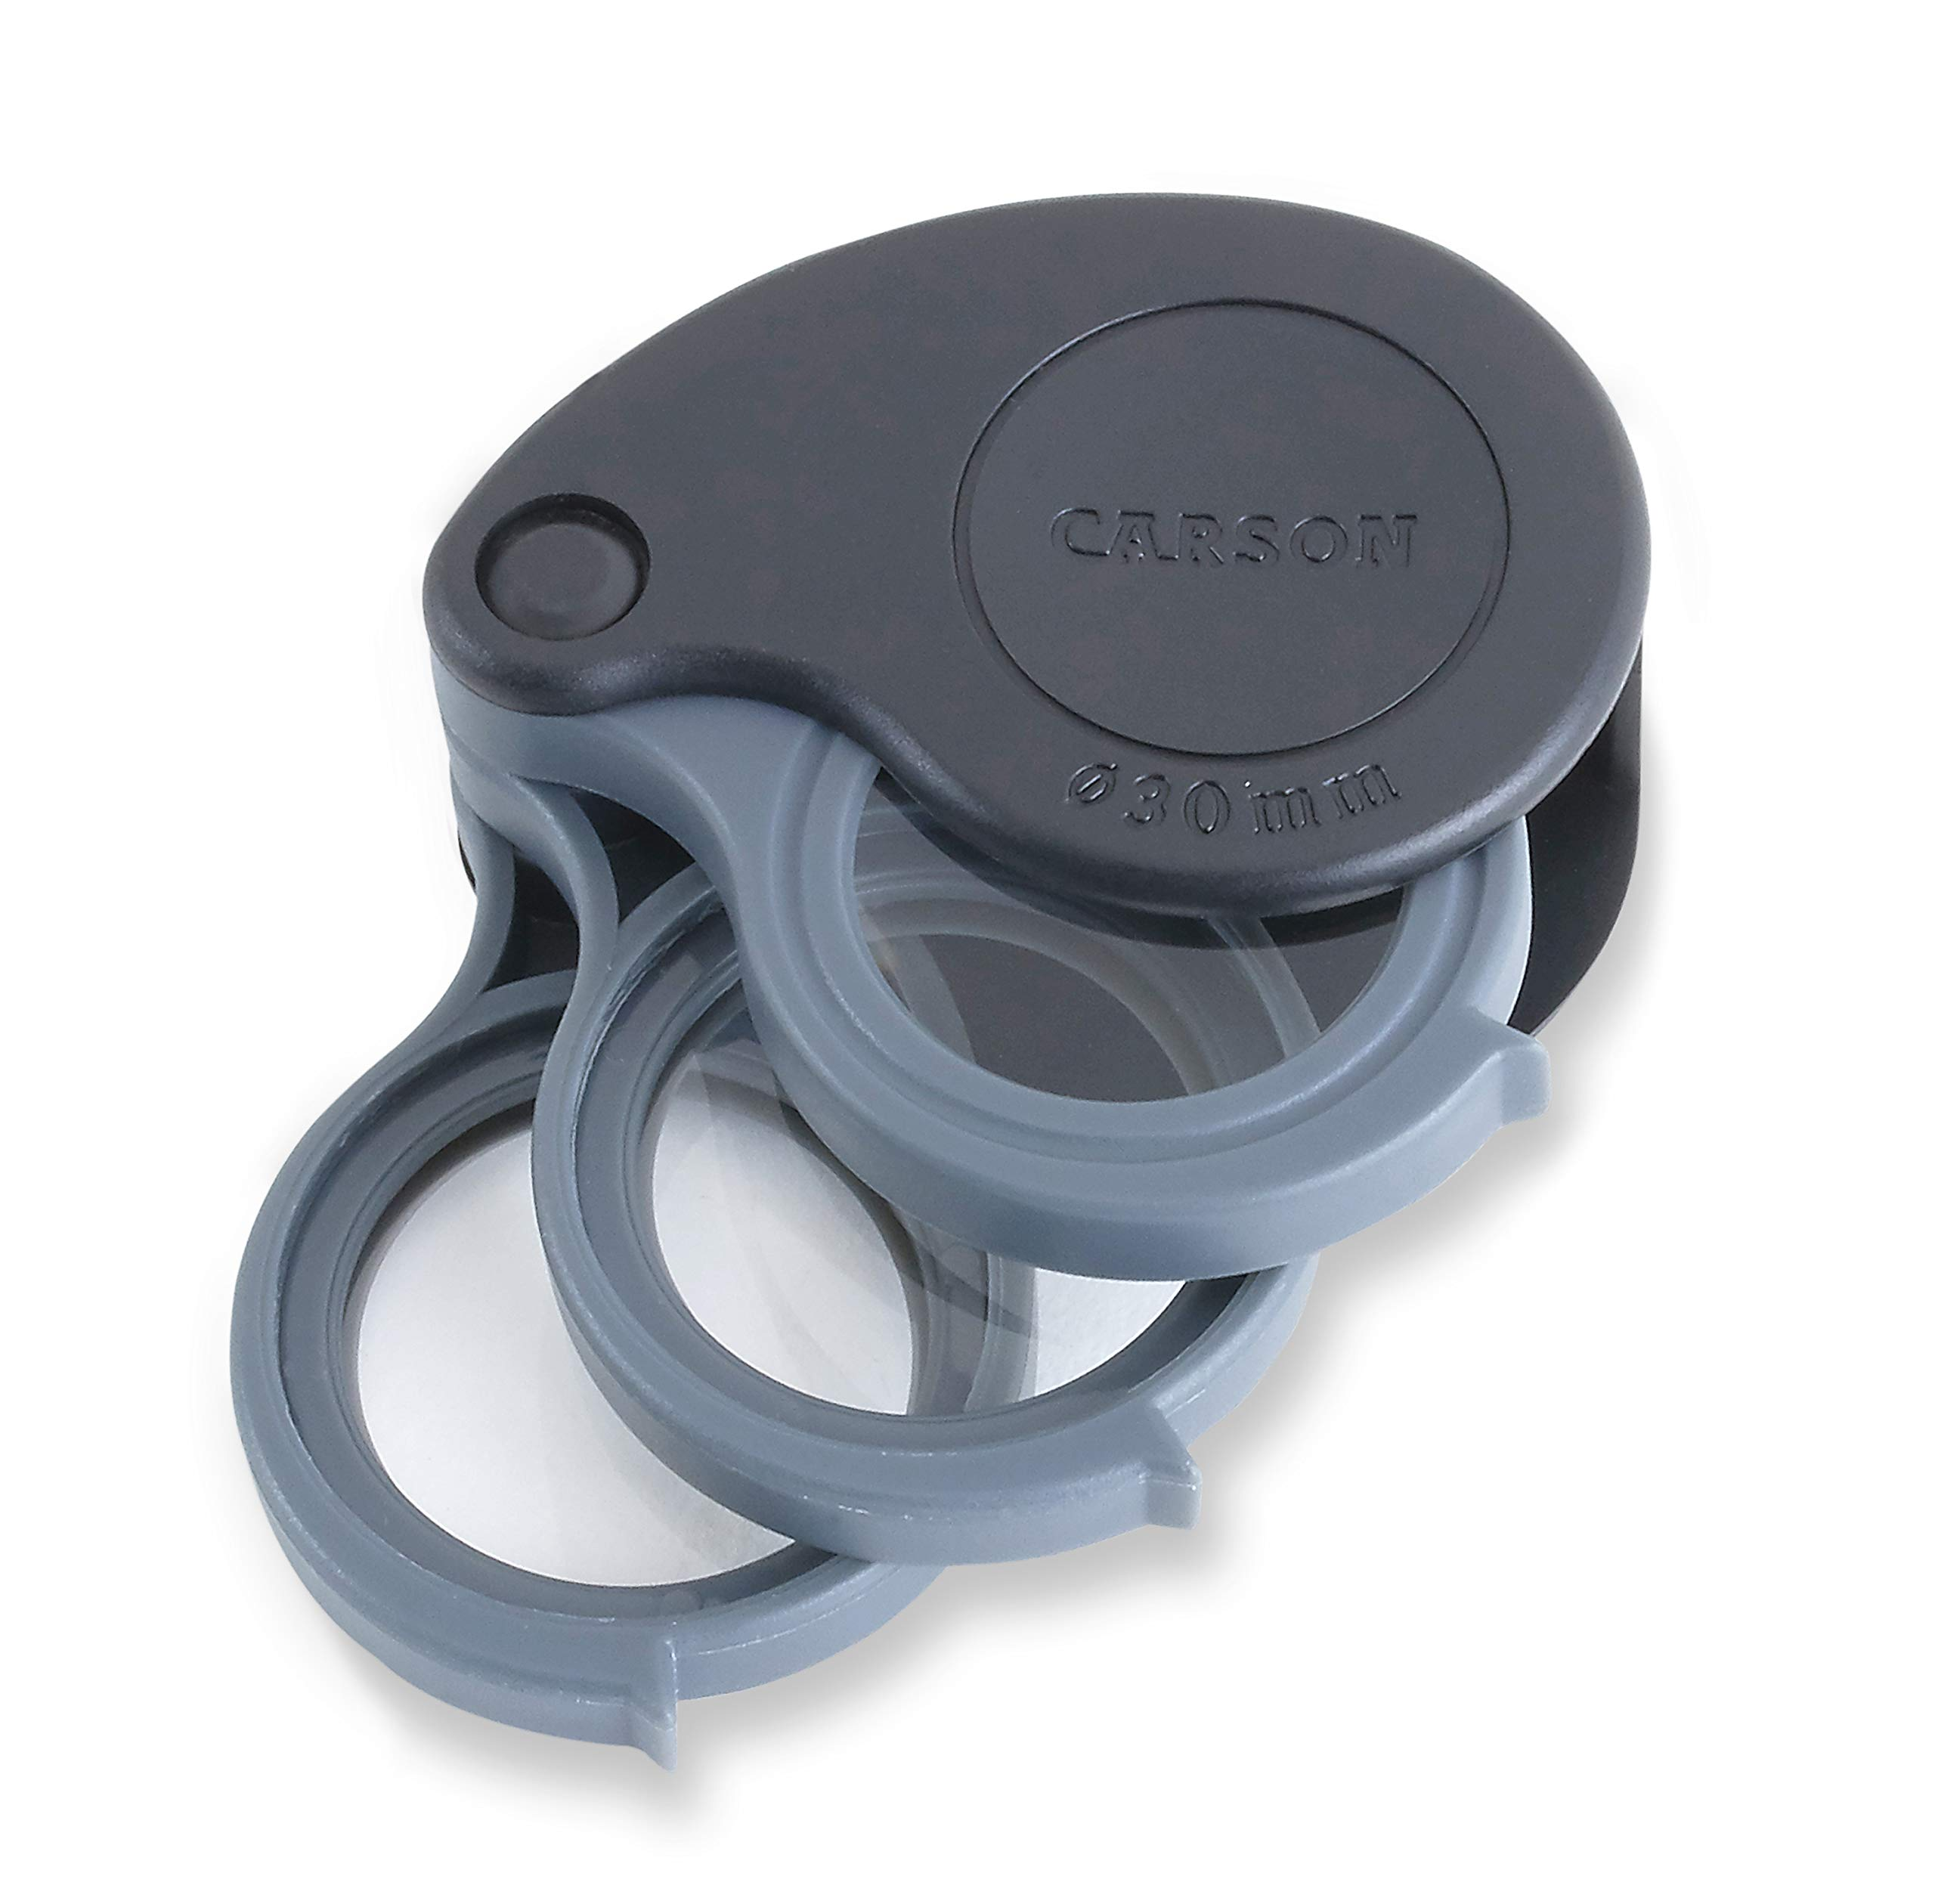 Carson TriView 5x/10x/15x Folding Loupe Magnifier with Built-in Case (TV-15) by Carson